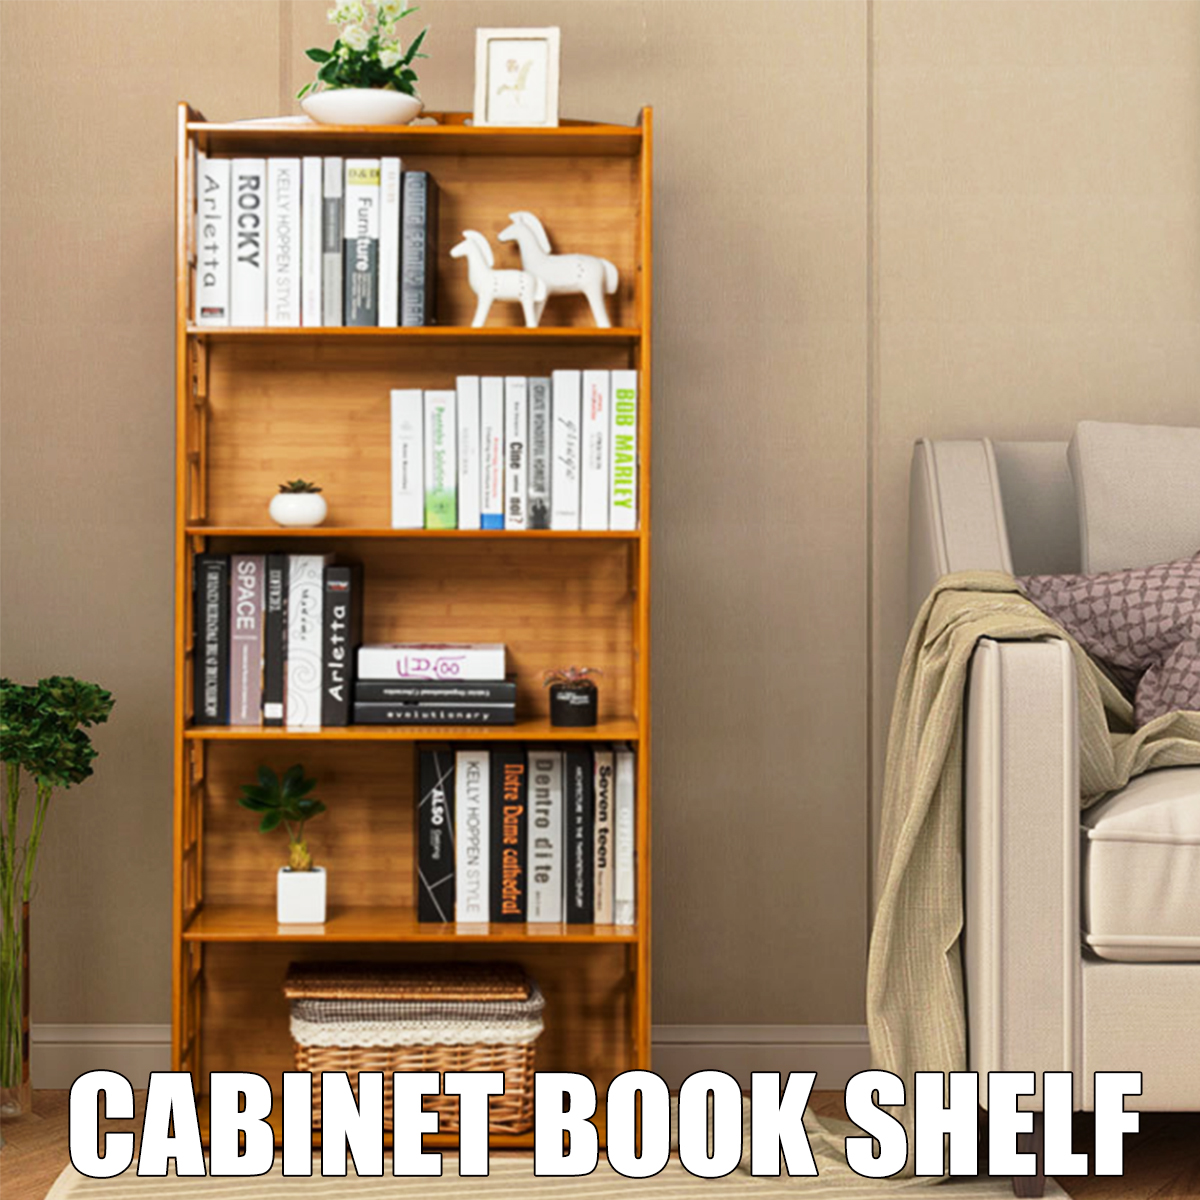 Details About Uk Wood Bookcase Shelving Unit Display Storage Shelf Vintage Cabinet 5 Layer